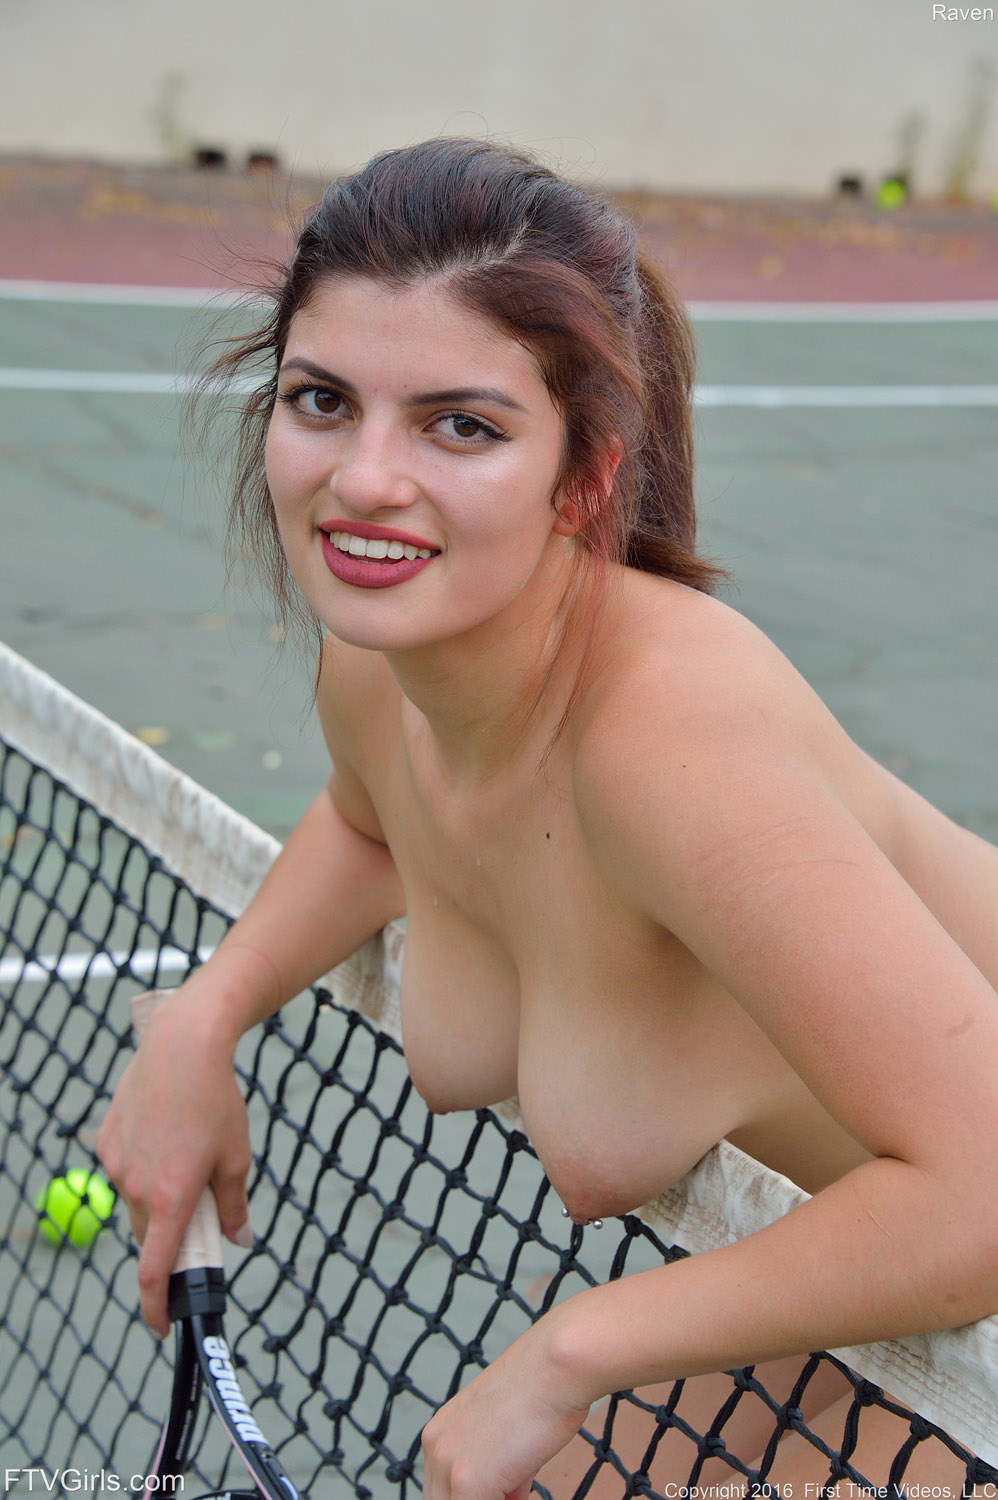 Raven Ftv Girls Sexy Tennis Lesson  Hotty Stop-6108